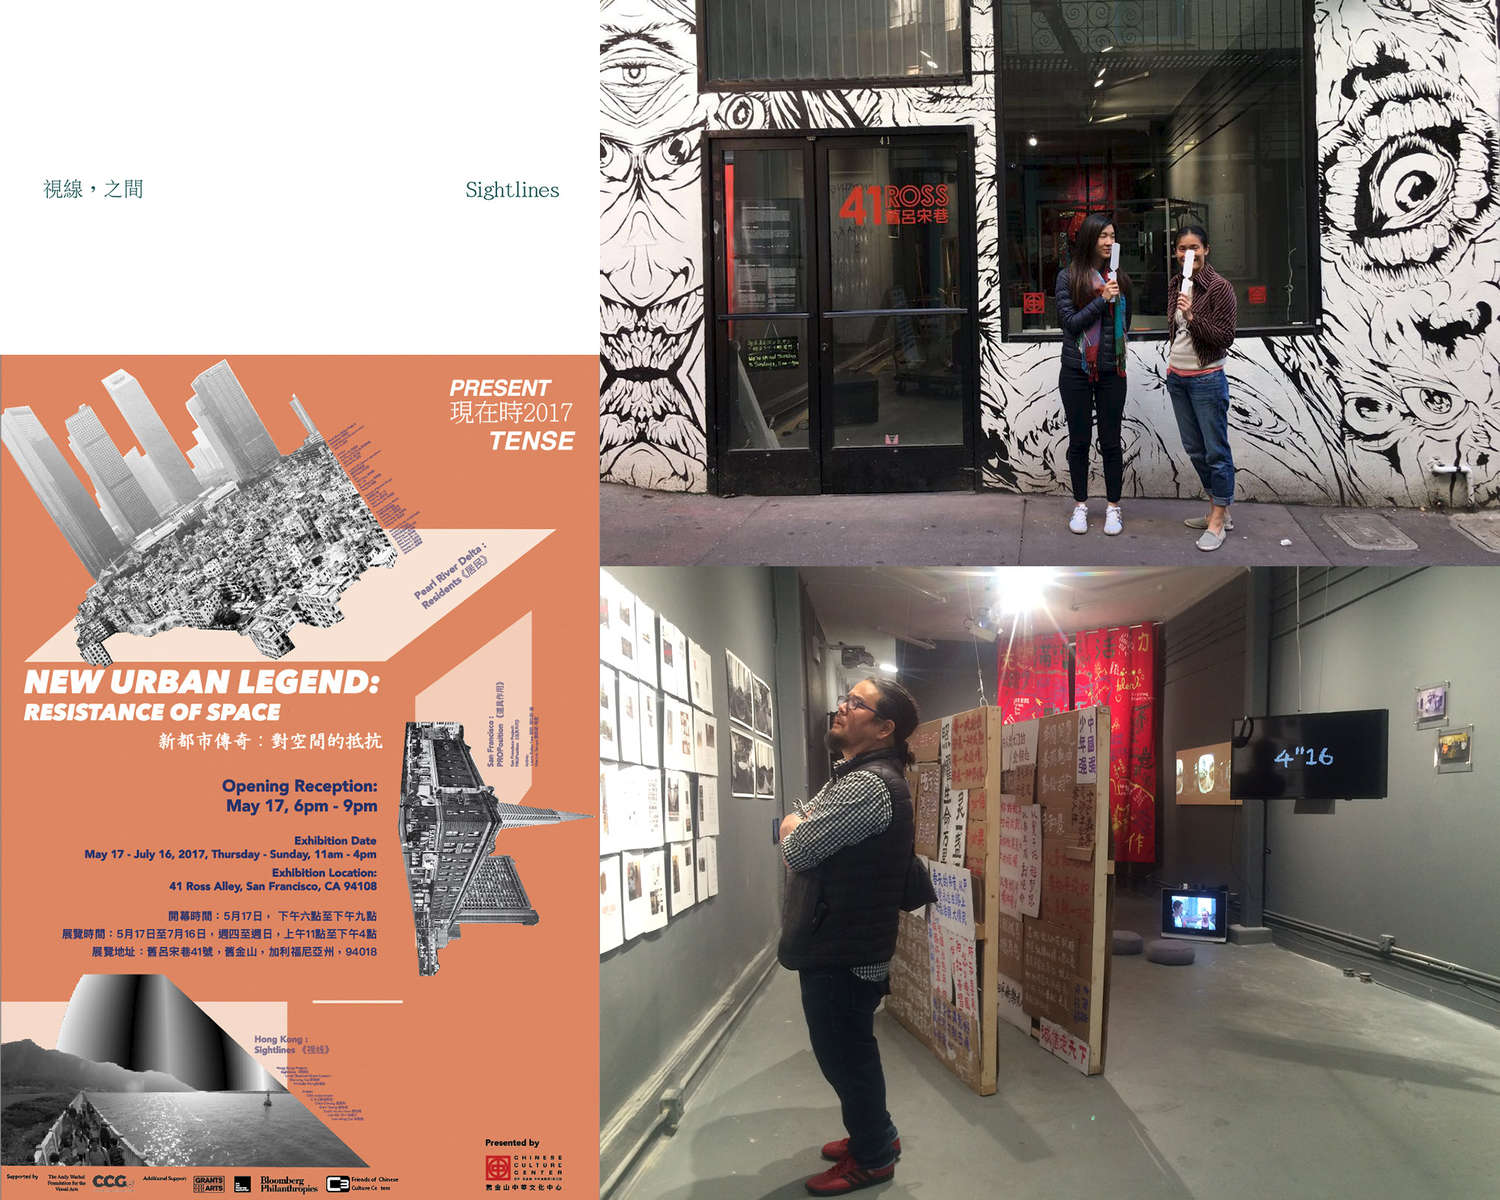 Sightlines is presented in New Urban Legend: Resistance of Space ,at 41 Ross, San Francisco, from May-July, 2017. Other artists and groups include Weston Teruya, the Pearl River Delta Residents project and Laura Boles Faw.As part of the Stanford Arts Institute/Stanford University and 41 Ross, we have a panel discussion: The Right to the Creative City: Towards Arts of Co-Liberation, at 41 Ross, San Francisco, on May 18, 2017 at 6.30pm.Panel ParticipantsAbby Chen, Artistic Director and Curator, Chinese Culture Center of SF, Ziying Duan, Assistant Curator, Chinese Culture Center of SF, Marci Kwon, Assistant Professor, Art History, Stanford University, Yongfeng Ma, artist, Wei Leng Tay, curator, Weston Teruya, artist, Michelle Wong, curator.